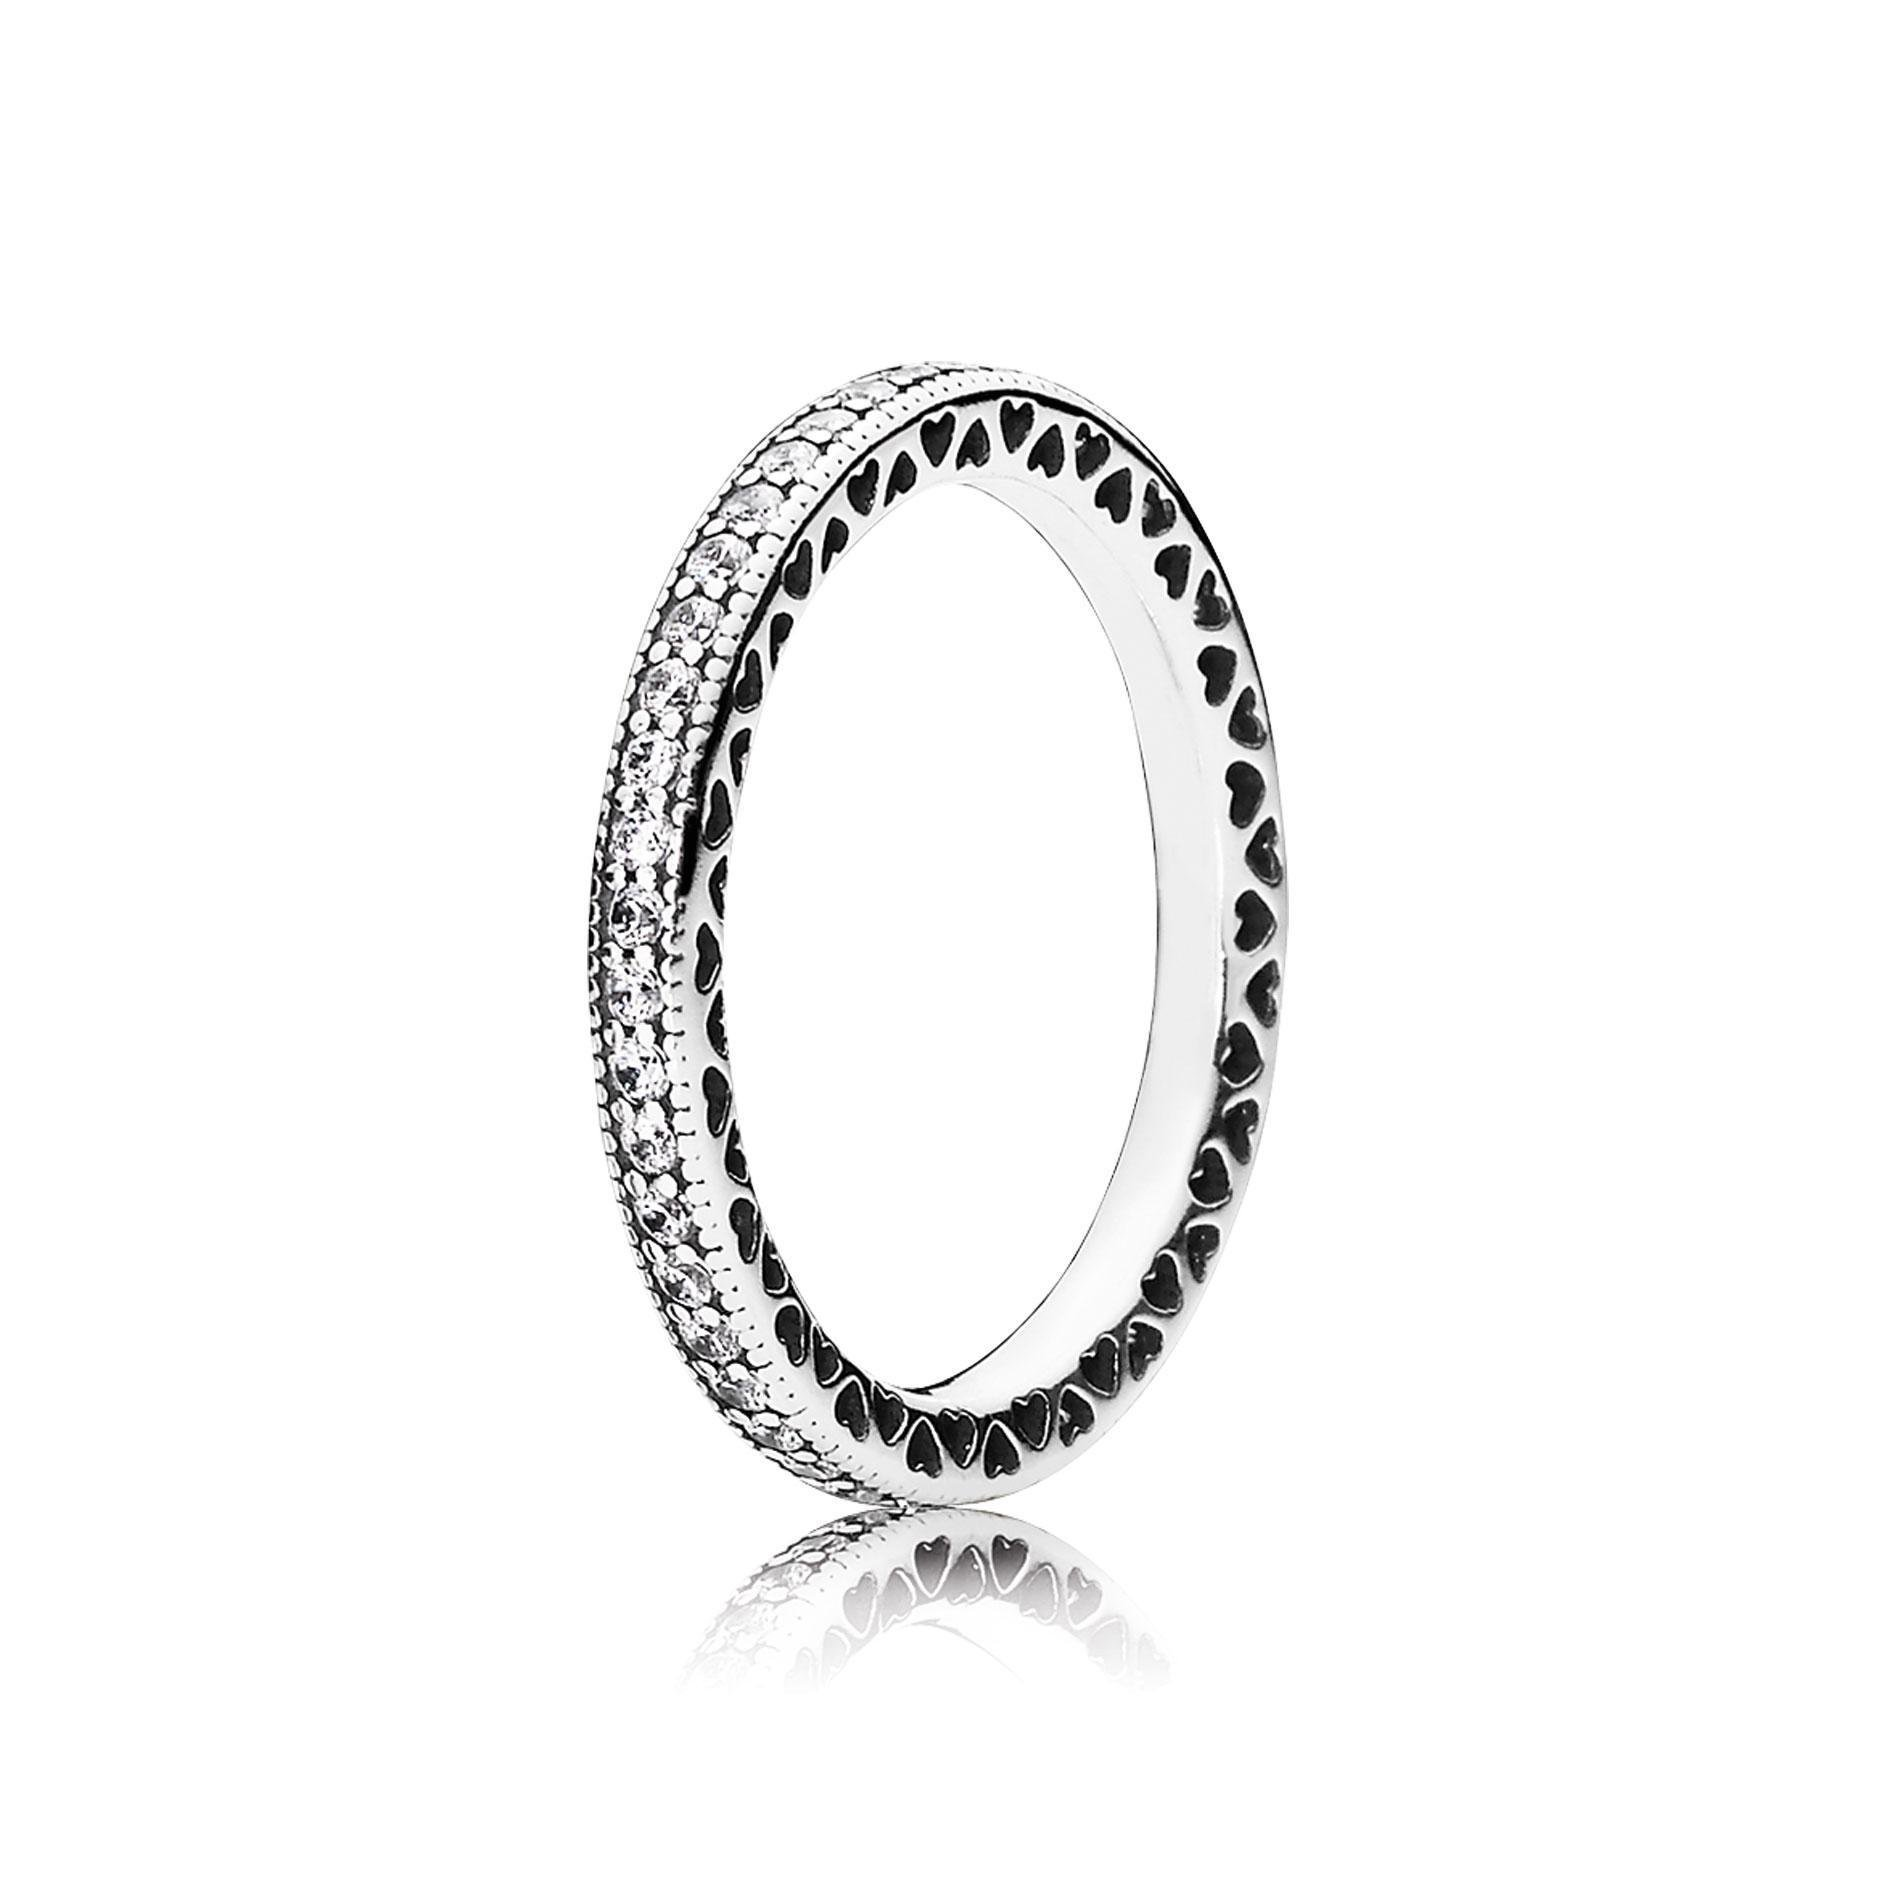 Pandora Hearts Of Pandora Ring Clear Cz From Reeds Jewelers